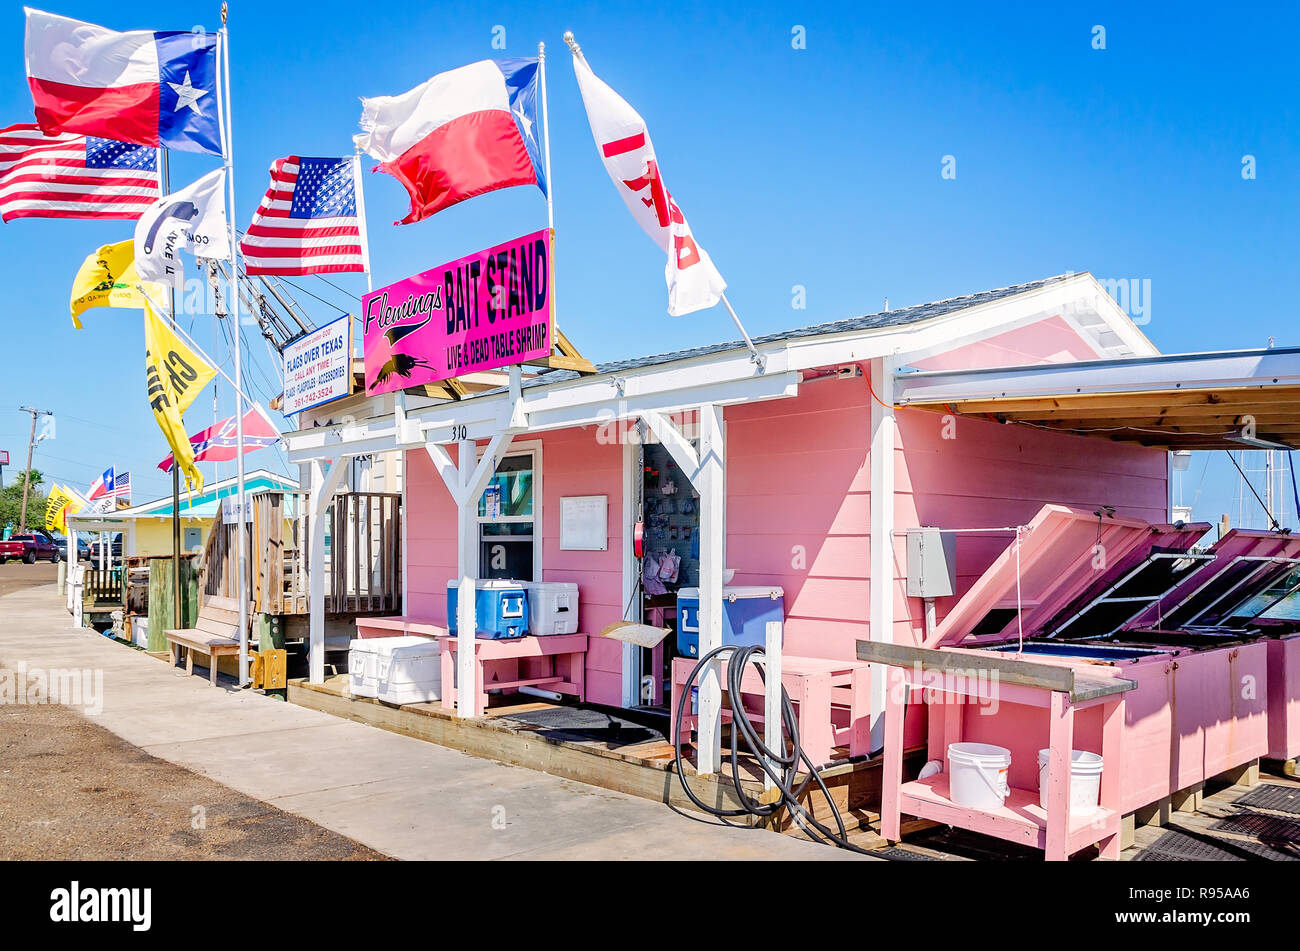 Flemings Bait Stand advertises shrimp for sale, Aug. 25, 2018, in Rockport, Texas. The area was heavily damaged by Hurricane Harvey in 2017. - Stock Image